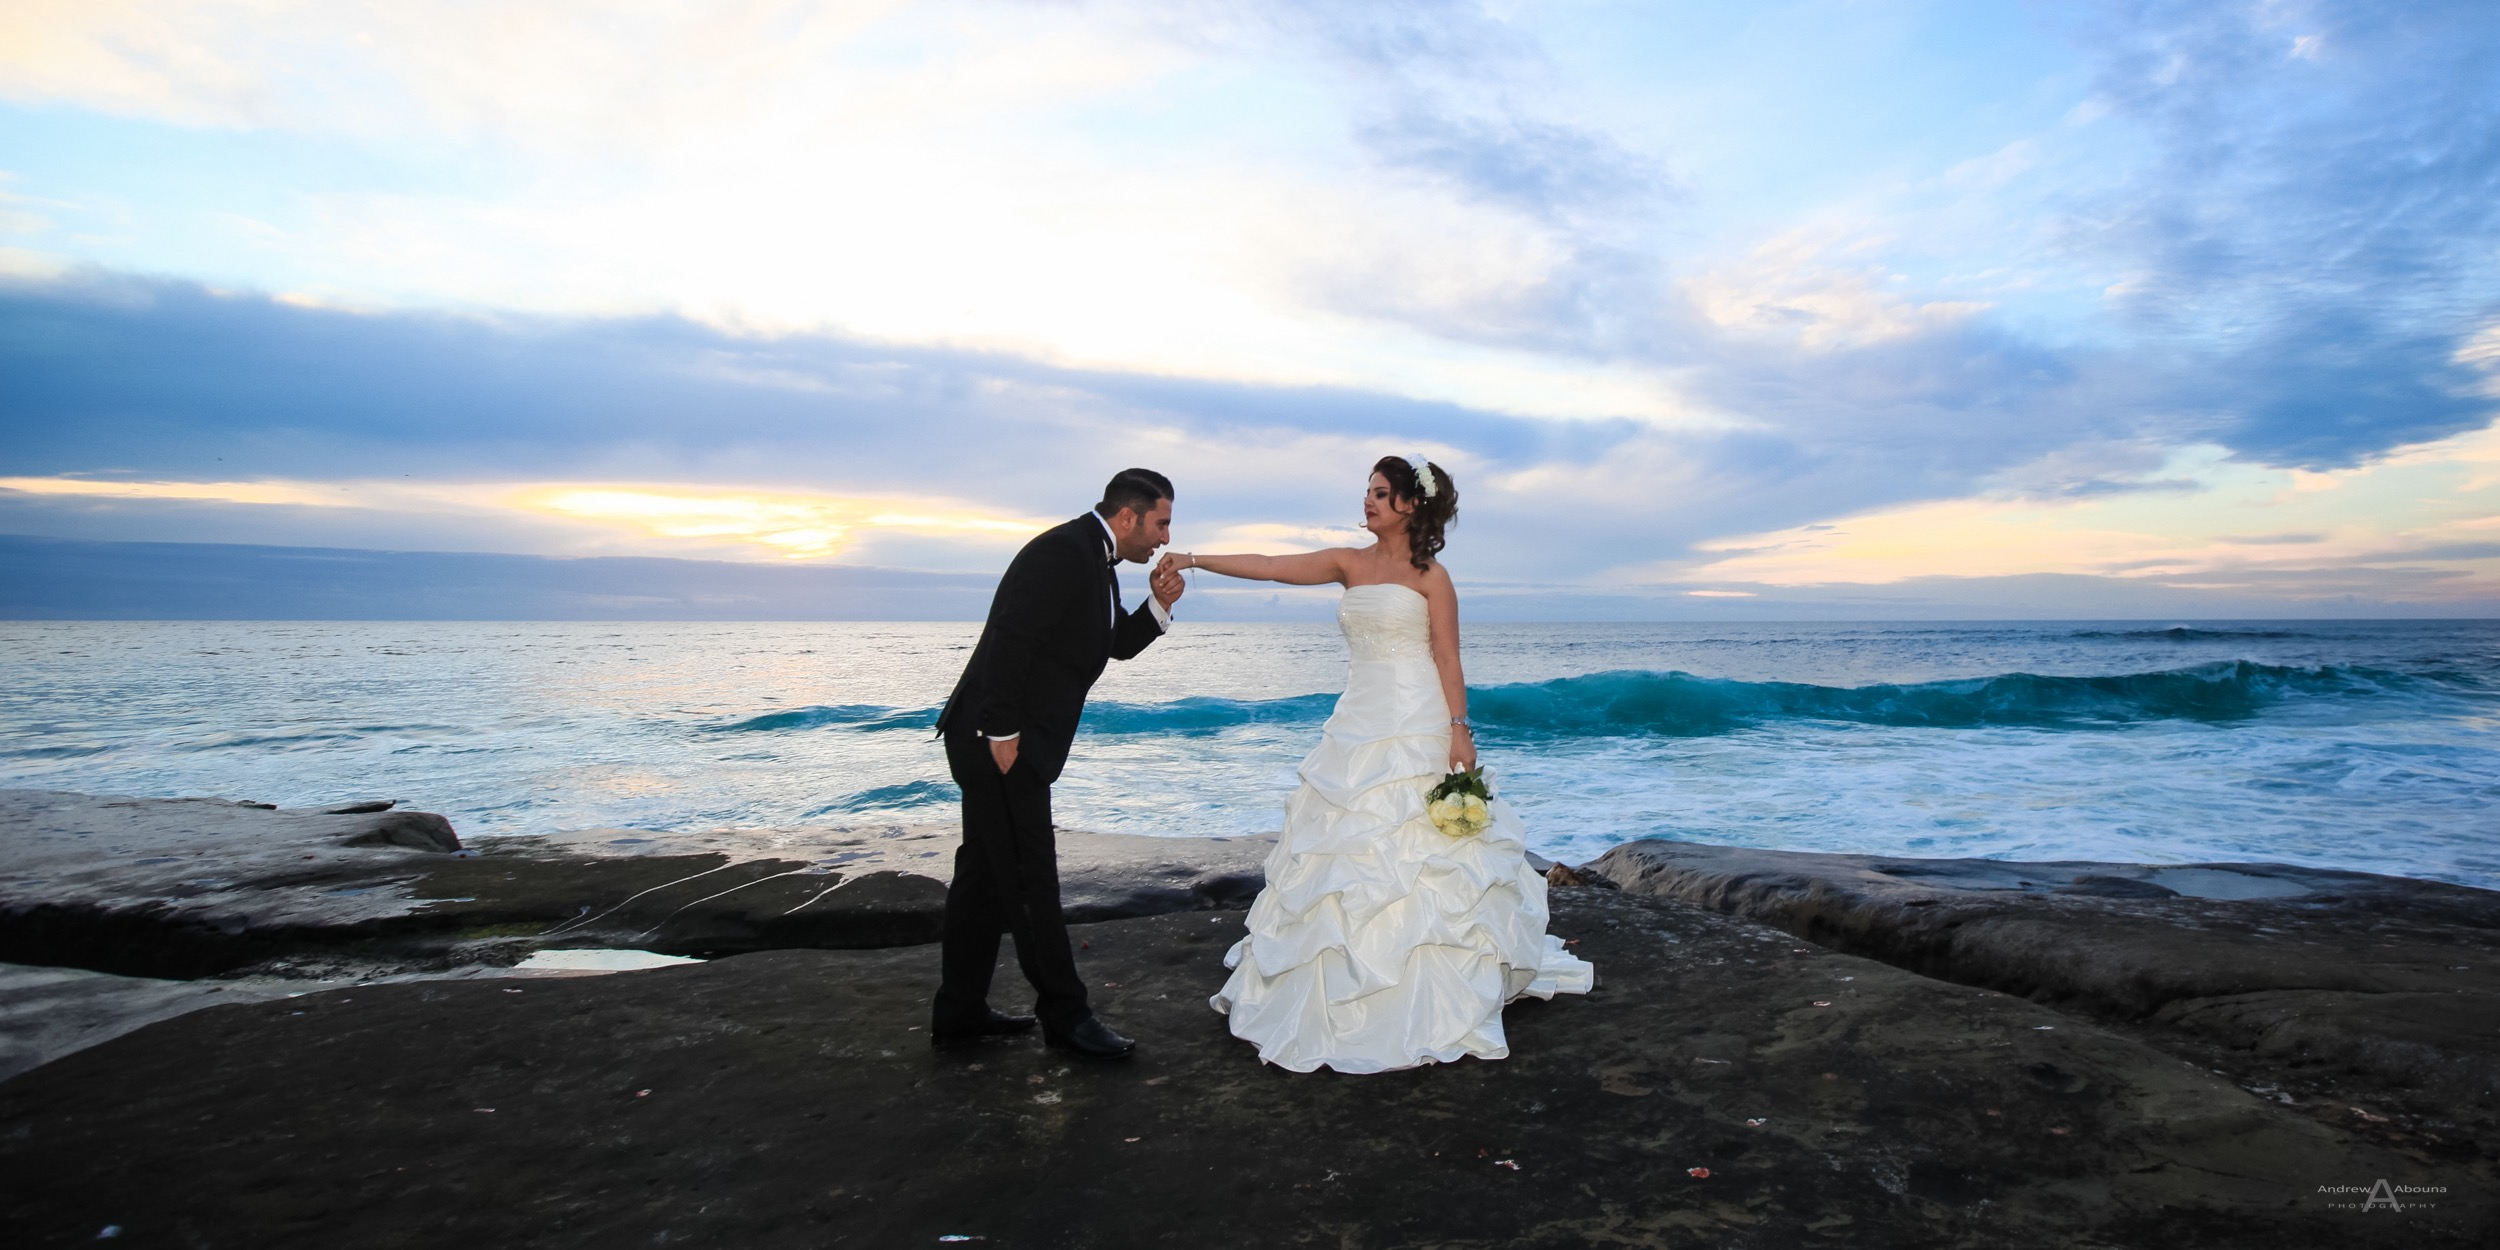 Groom in tux kisses hand of bride in wedding dress on rocky beach ...